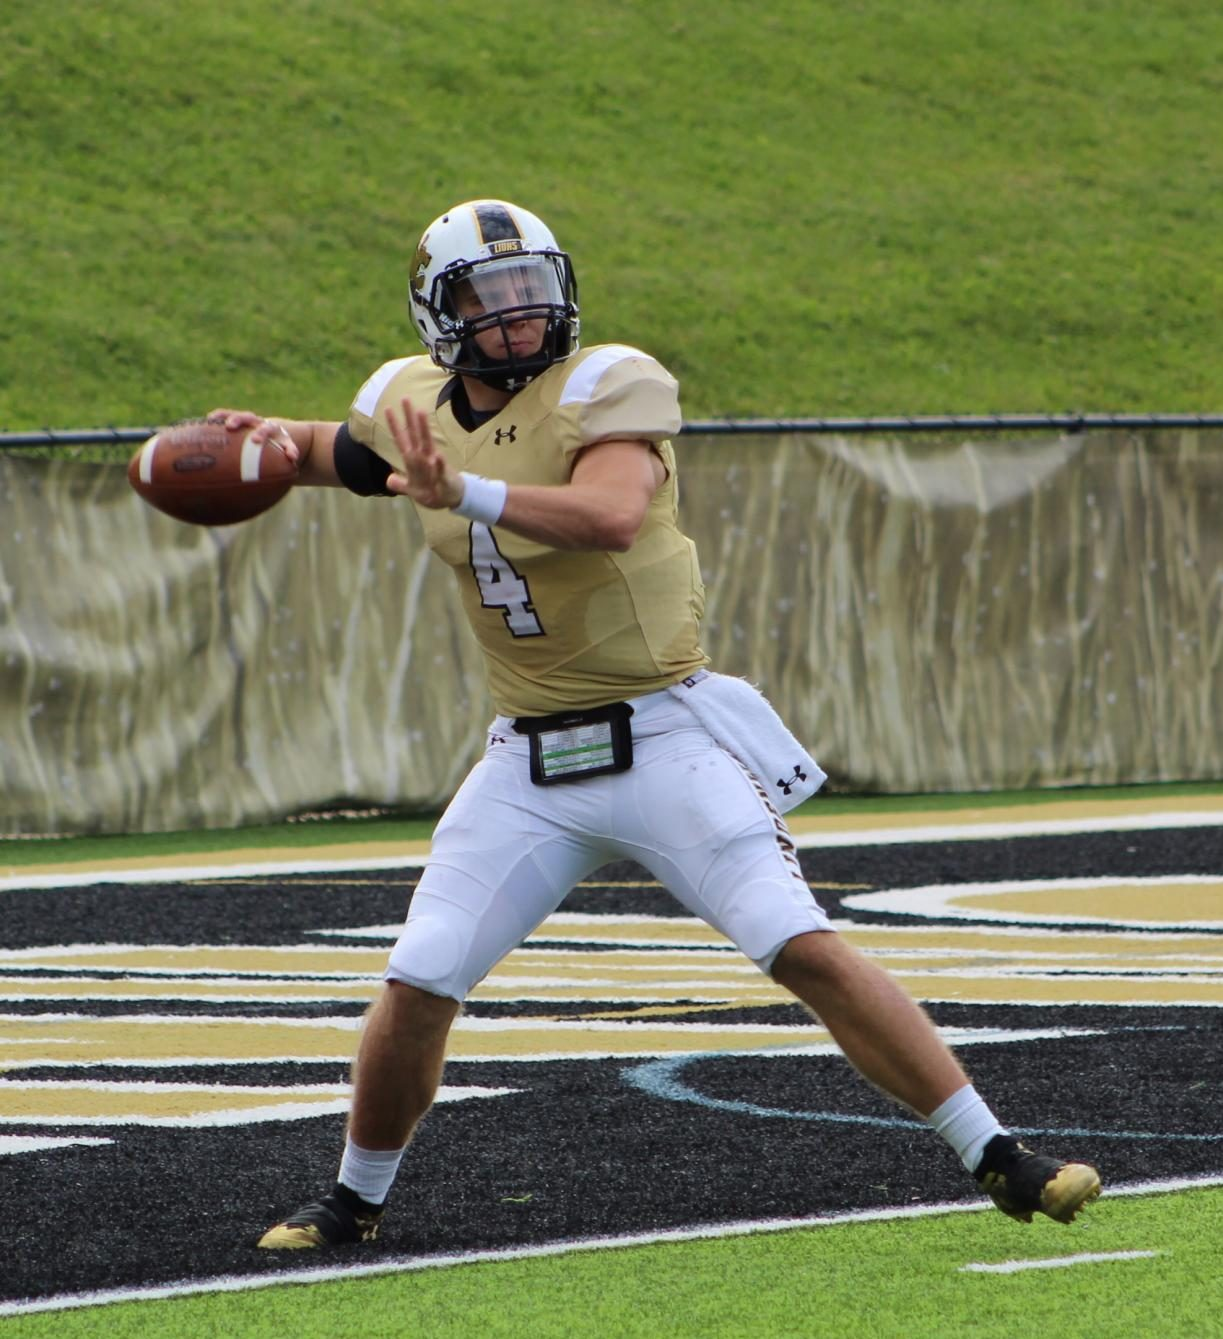 Lindenwood quarterback Cade Brister during the game against Saginaw Valley State on Oct. 2019.